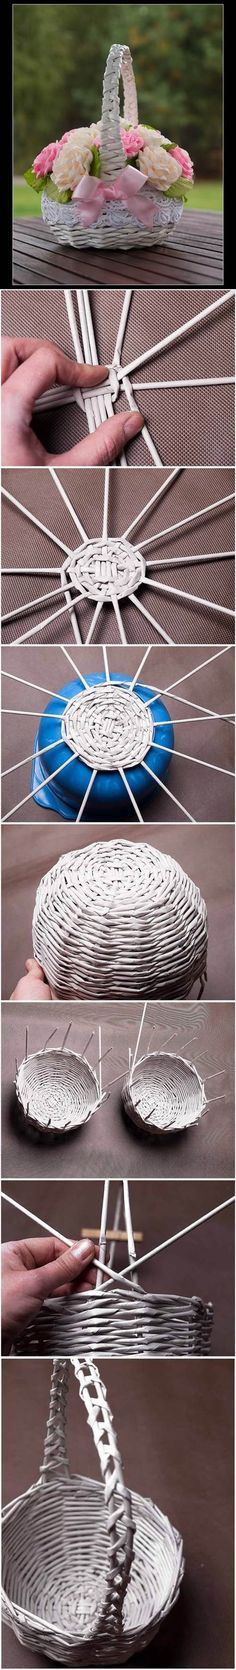 How to DIY Newspaper Tubes Weaving Basket Newspaper Basket, Newspaper Crafts, Hobbies And Crafts, Diy And Crafts, Arts And Crafts, Diy Projects To Try, Craft Projects, Paper Weaving, Recycled Crafts